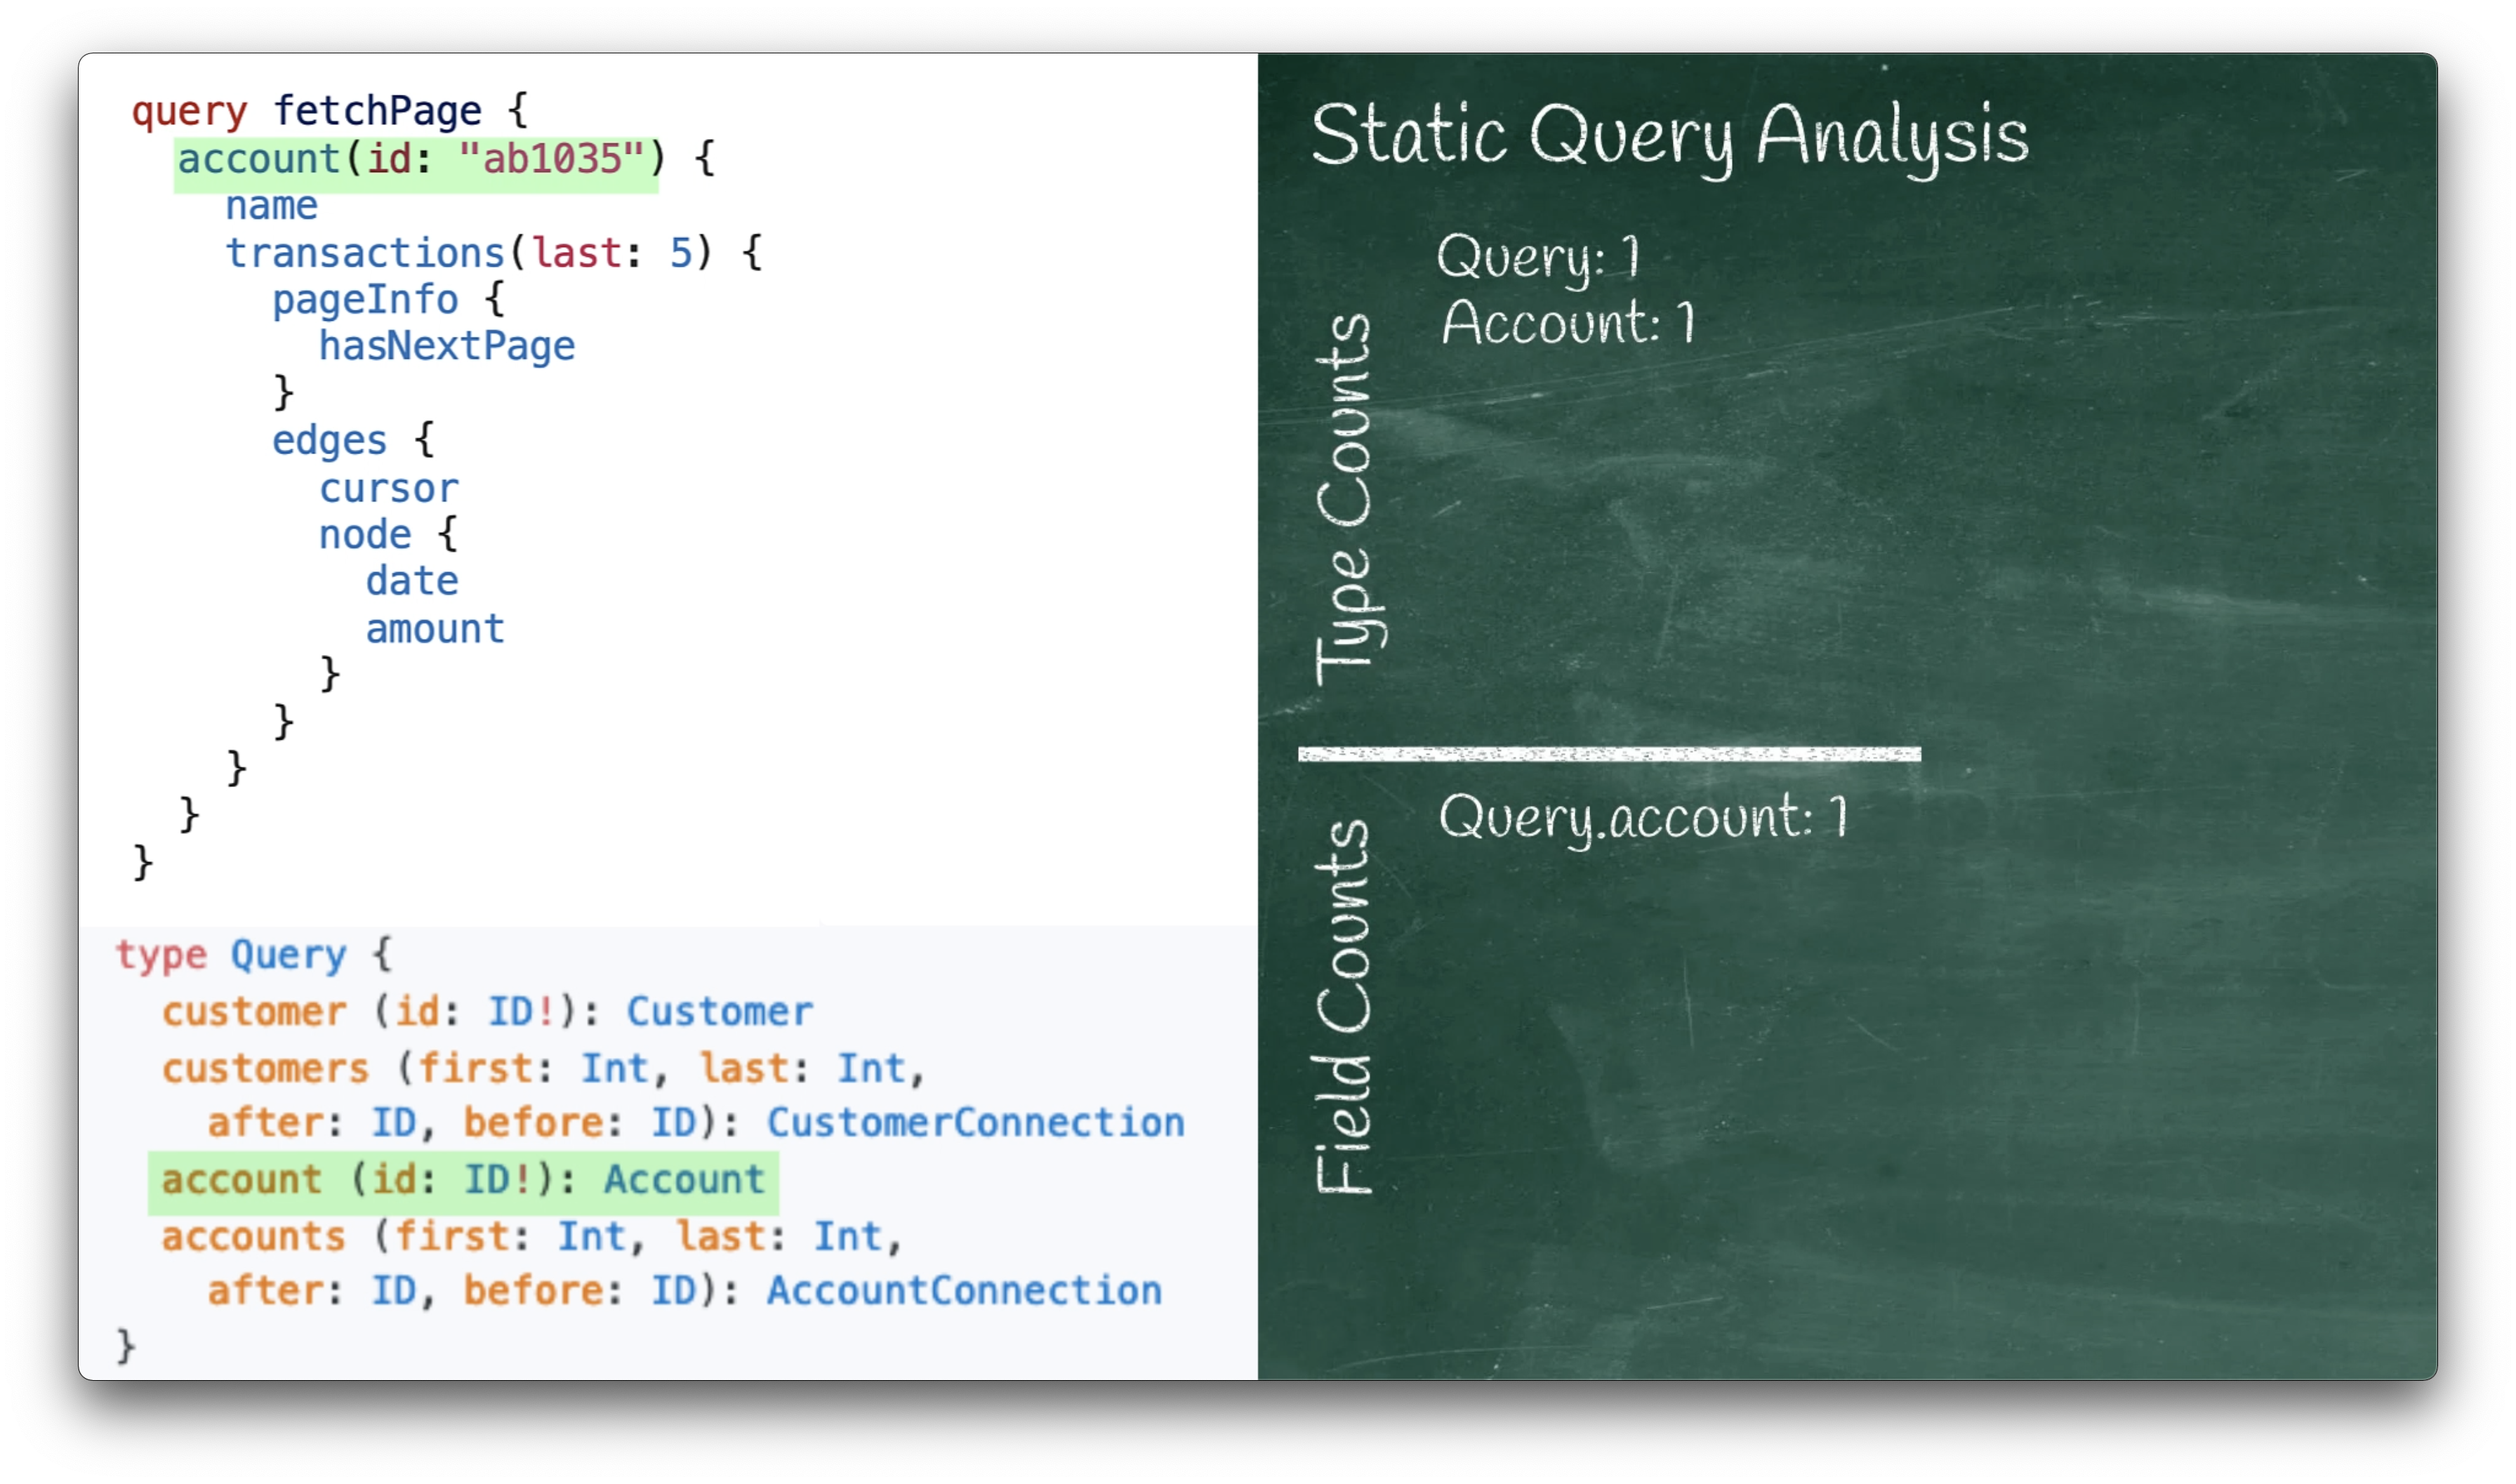 Static Query Analysis Timestep 2